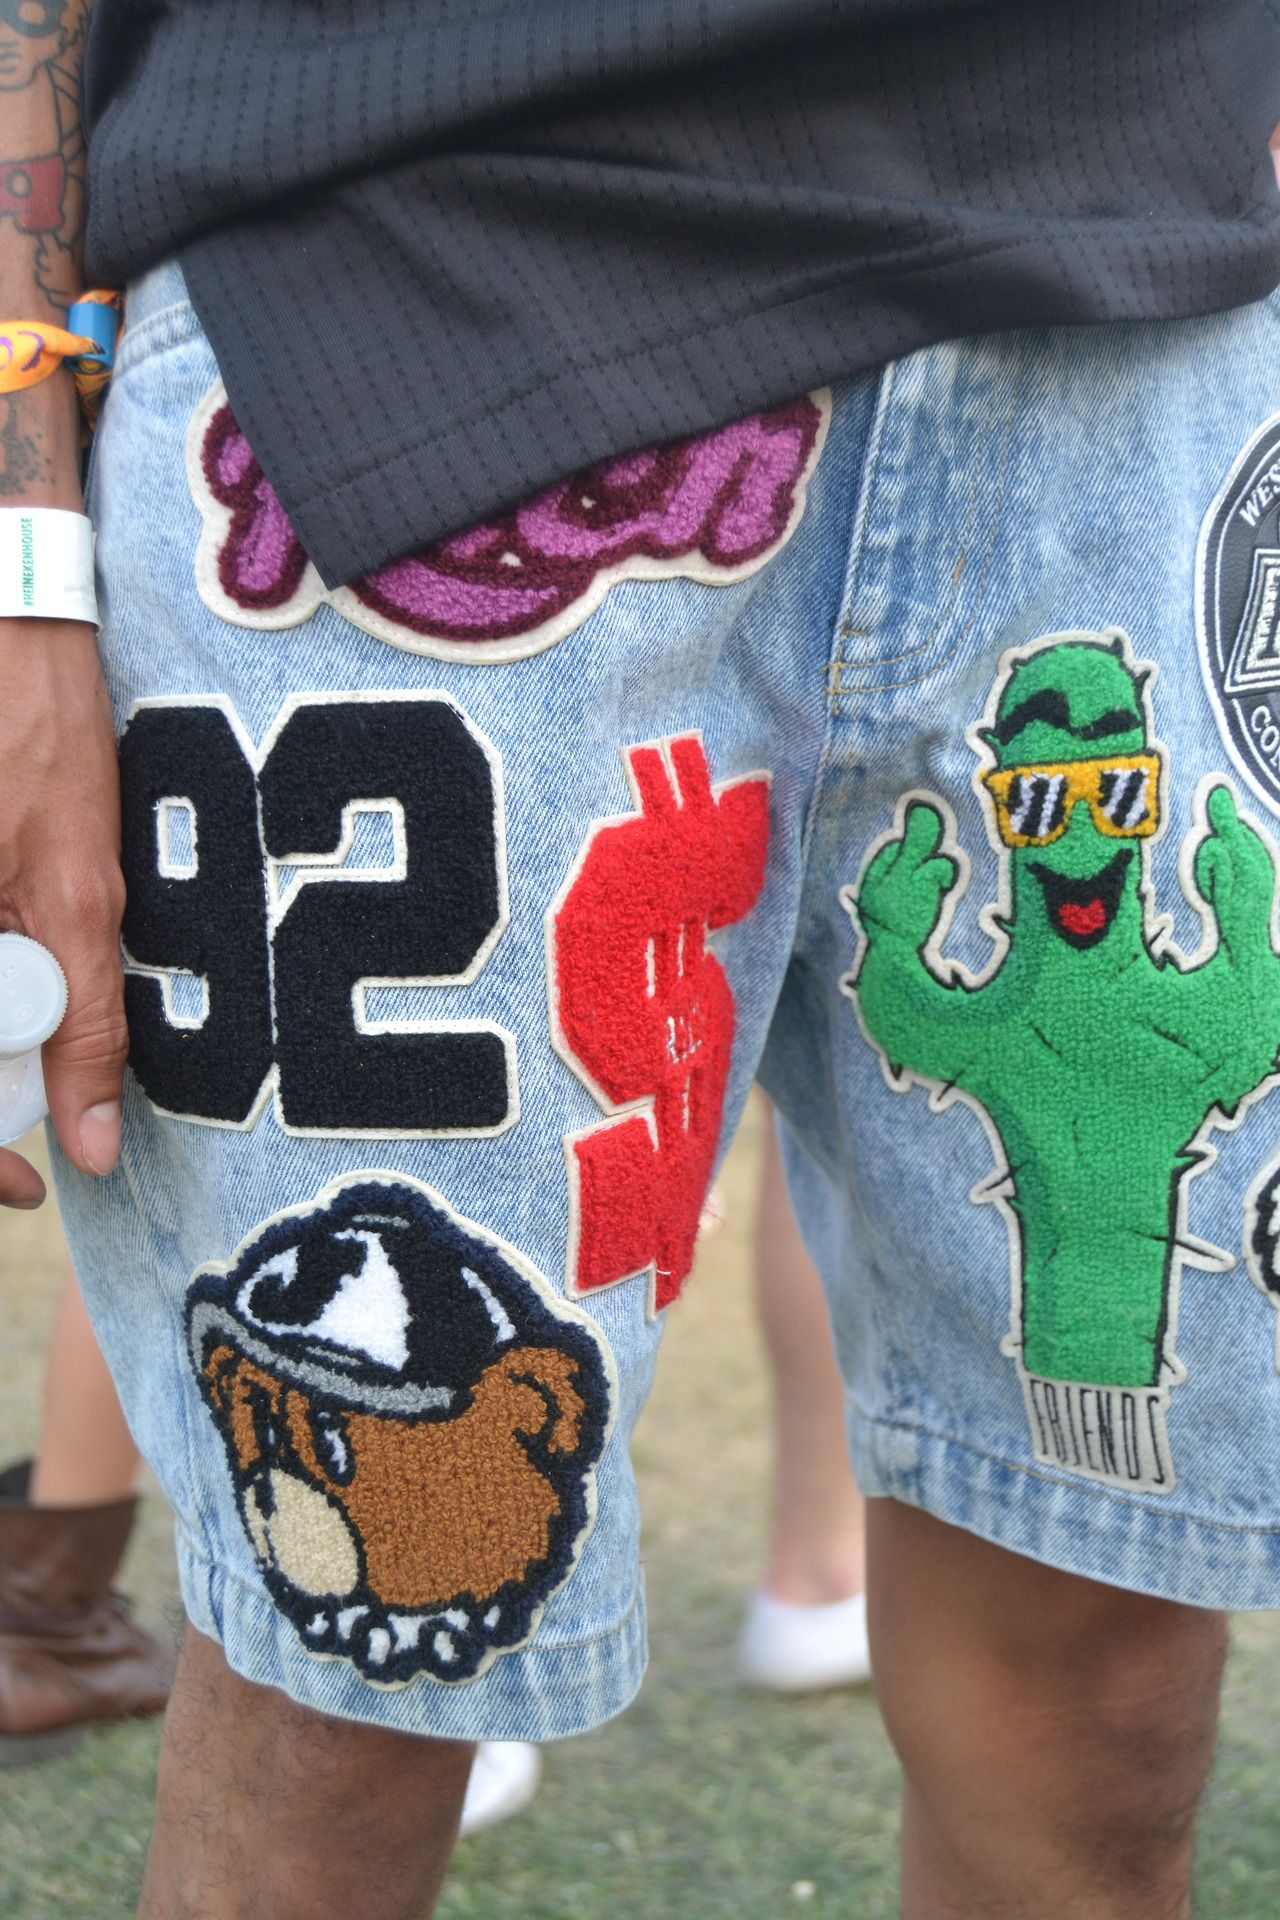 Some of the coolest denim patches we saw at Coachella yesterday #streestyle #wgsnlive